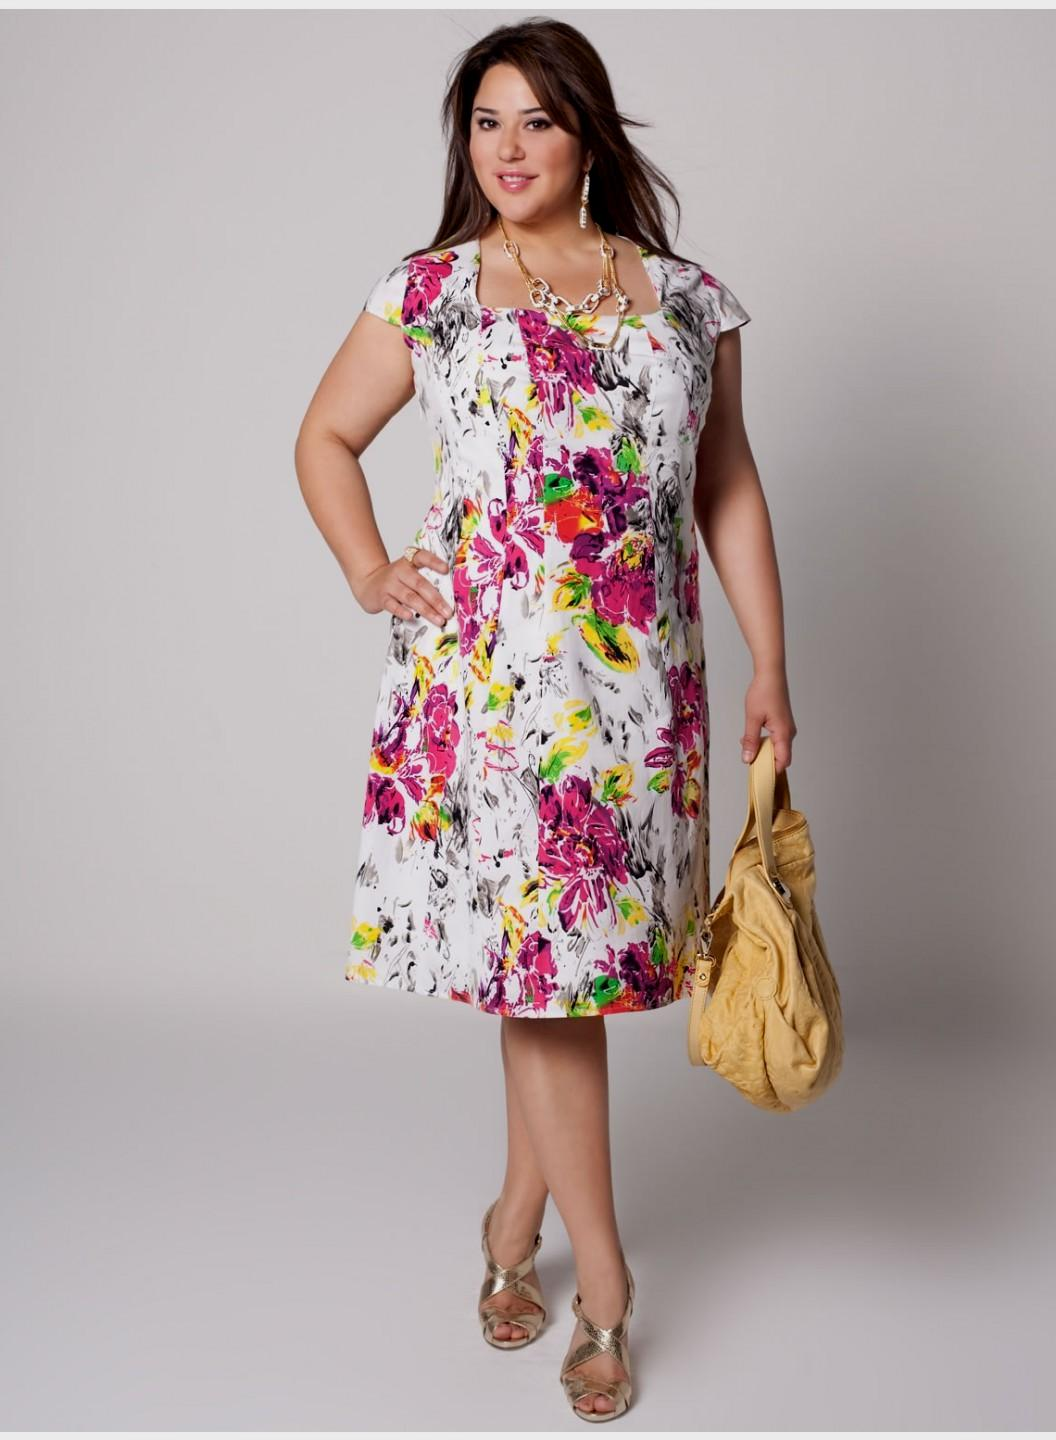 Plus Size Cotton Sundresses